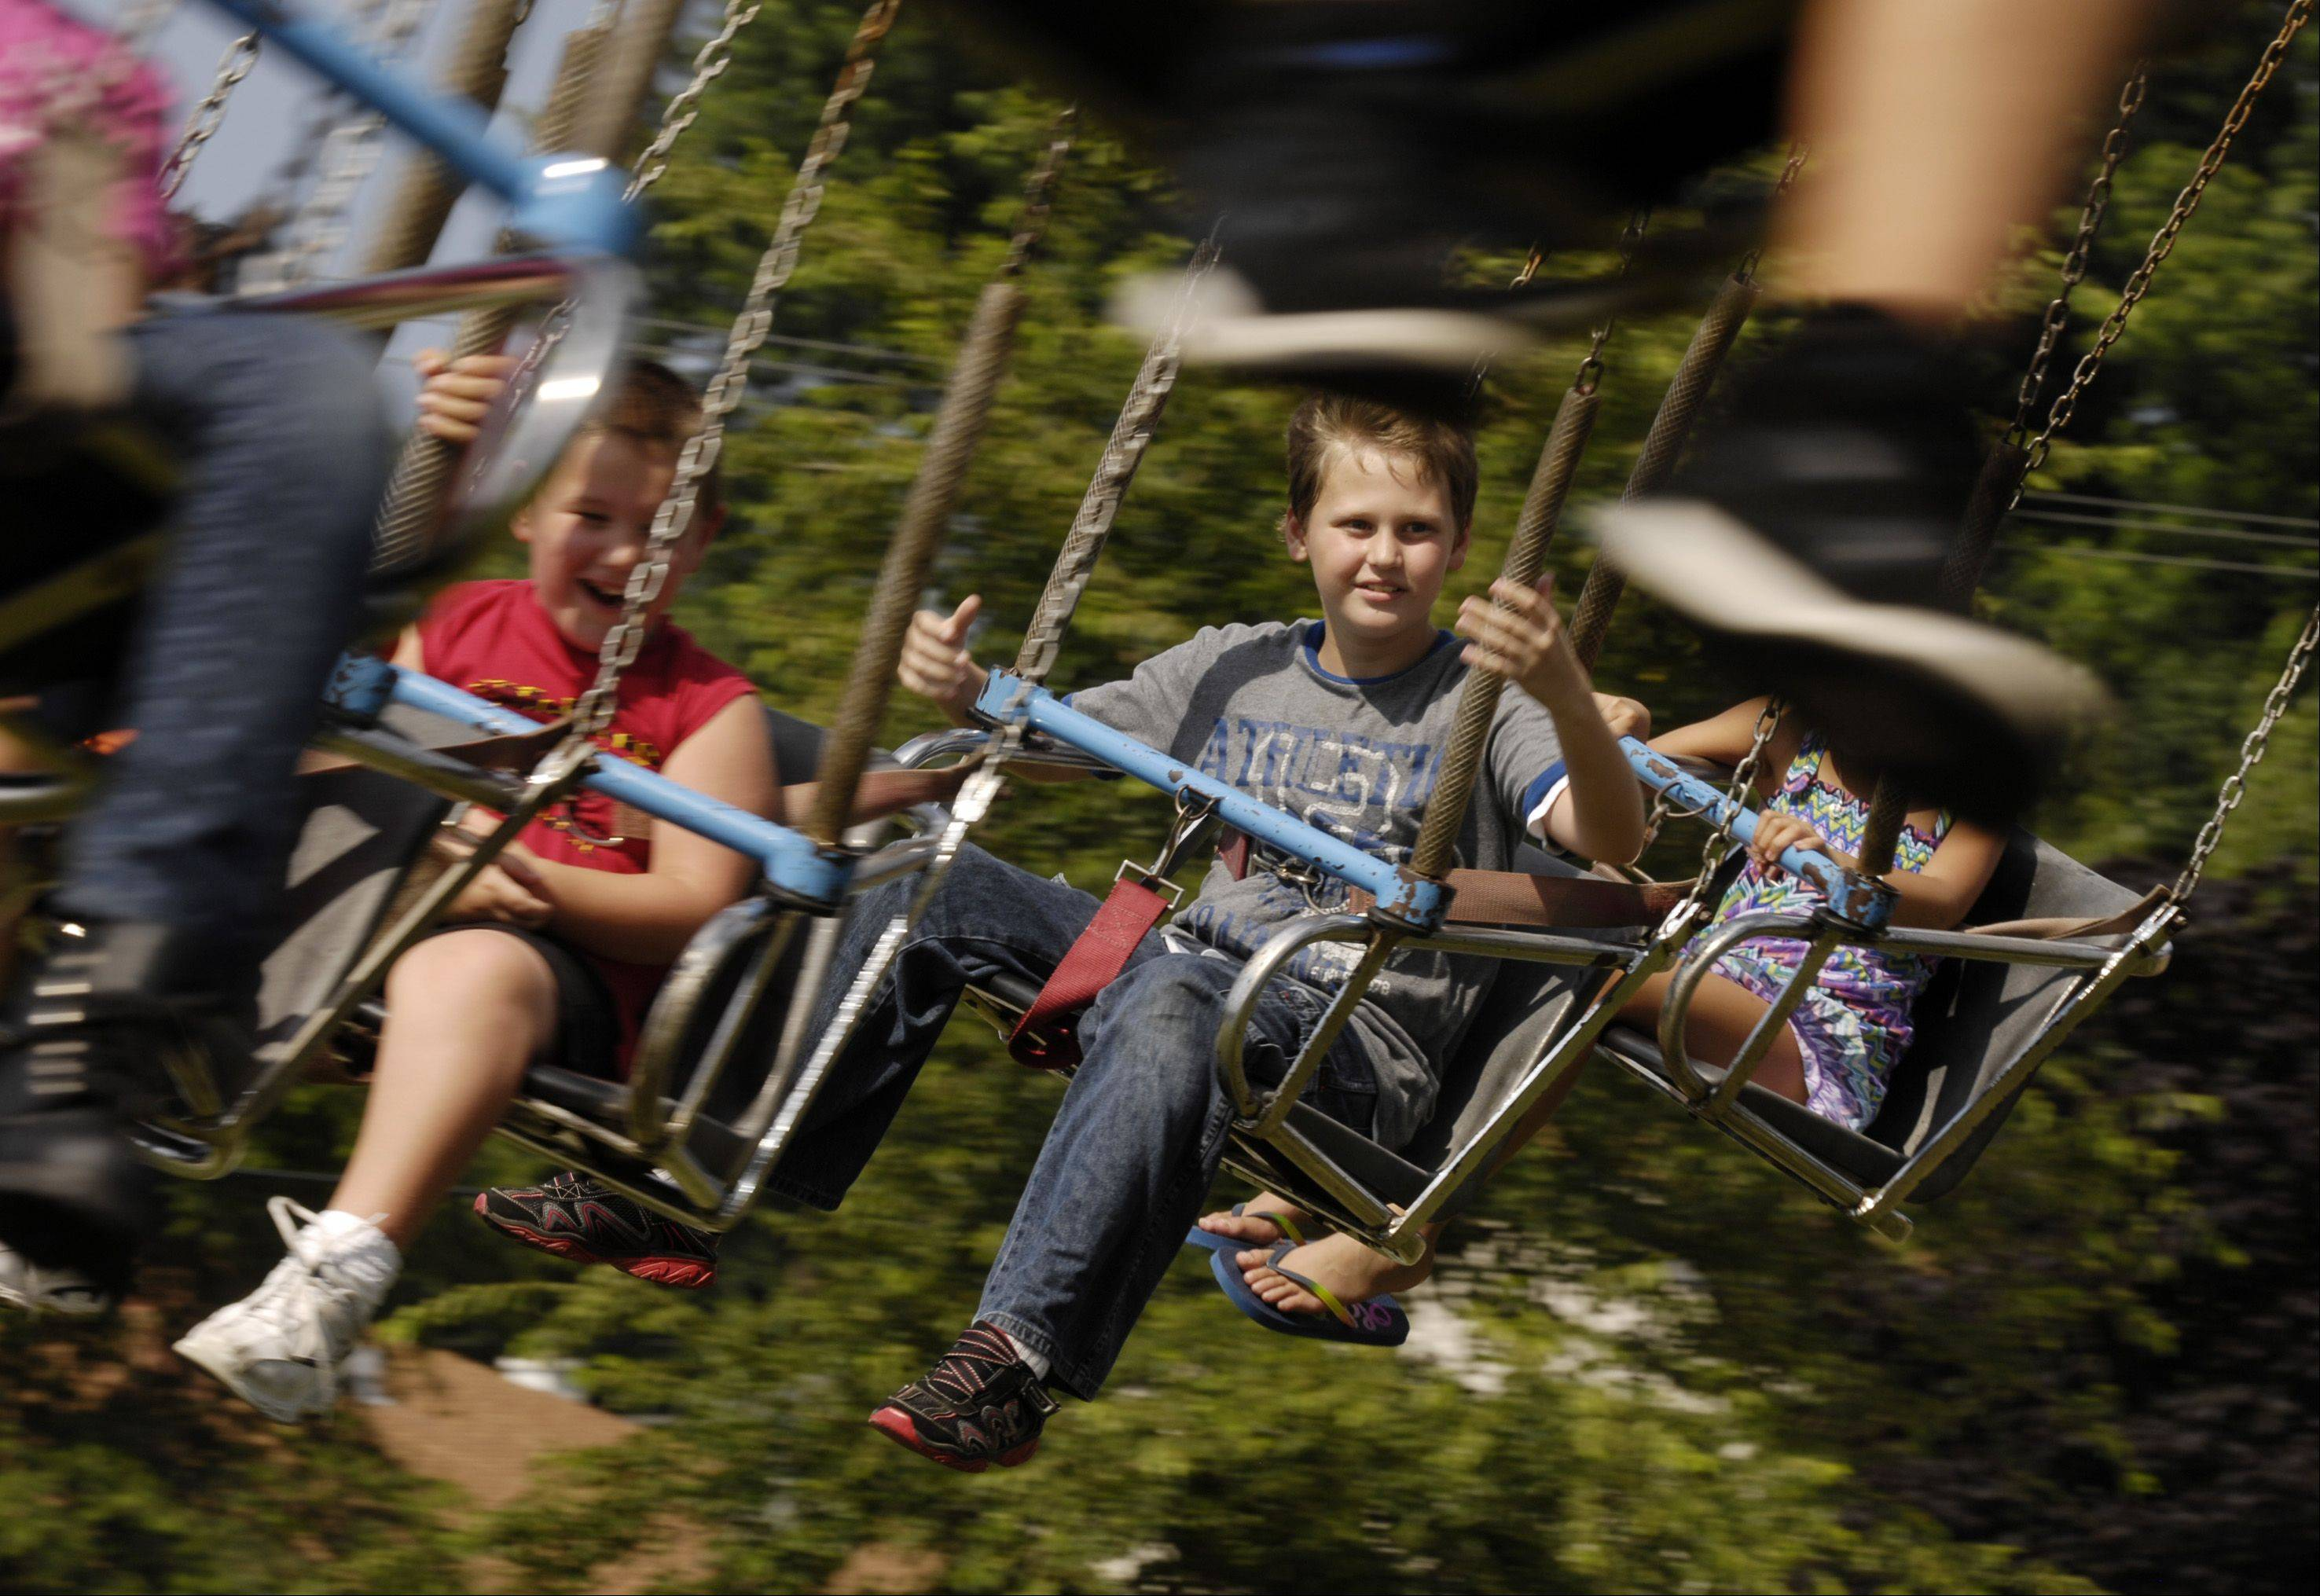 Christian Myers, 13 of Carol Stream rides the YoYo swing ride during the final day of the 2013 Glendale Heights Fest, Sunday.